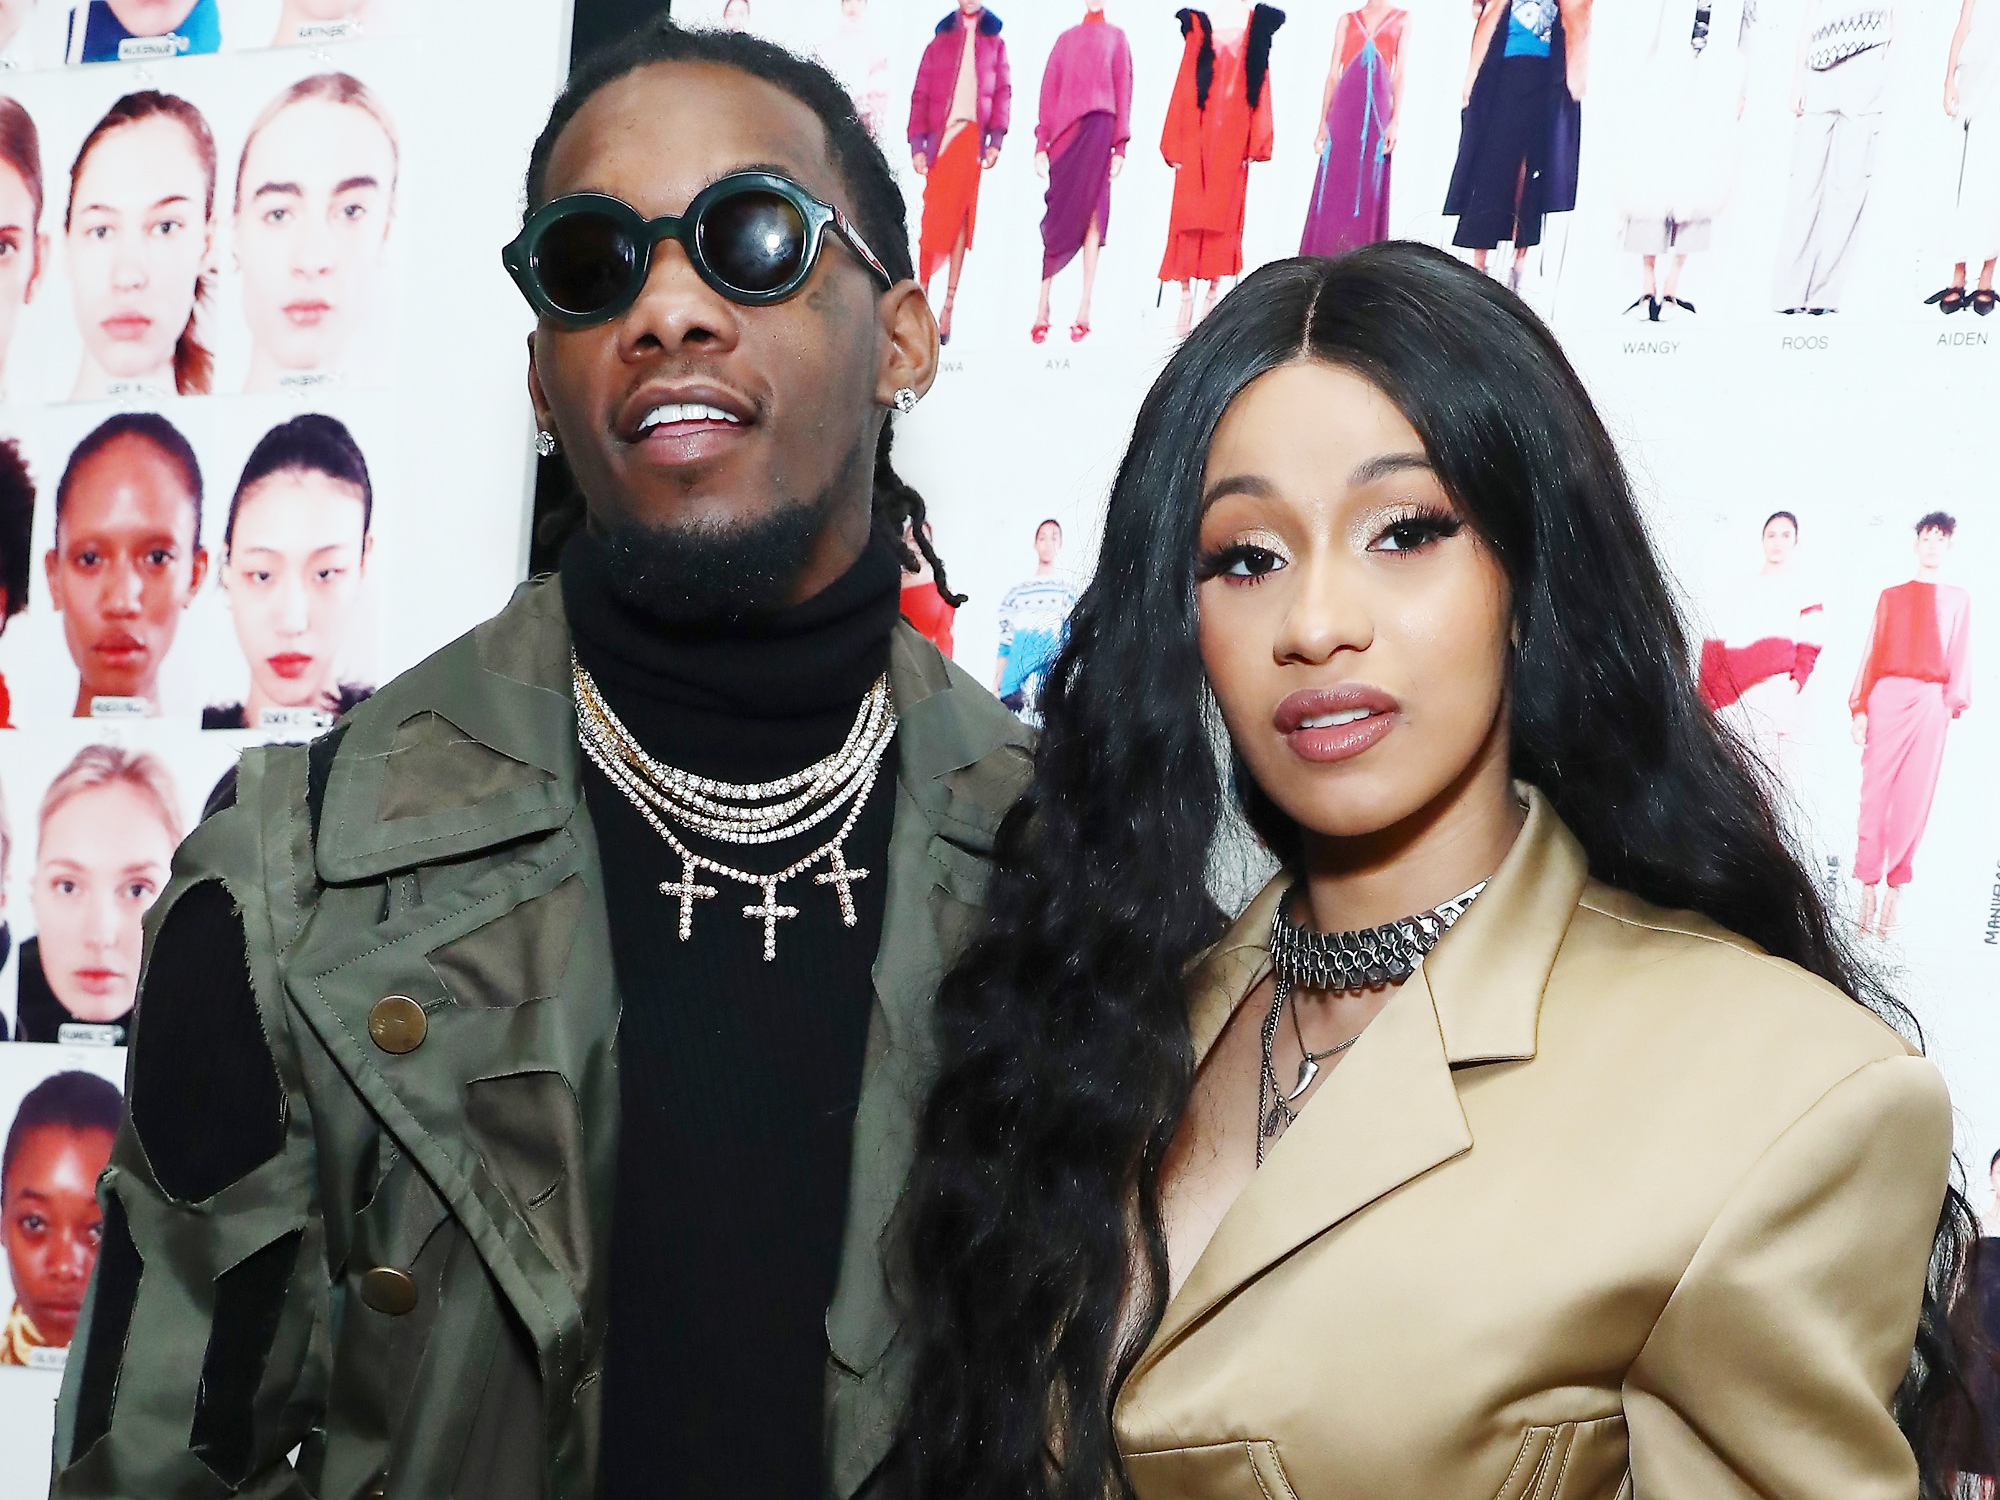 cardi b Cardi B and Offset Have Been Secretly Married Since September 2017 031918 cardi b offset